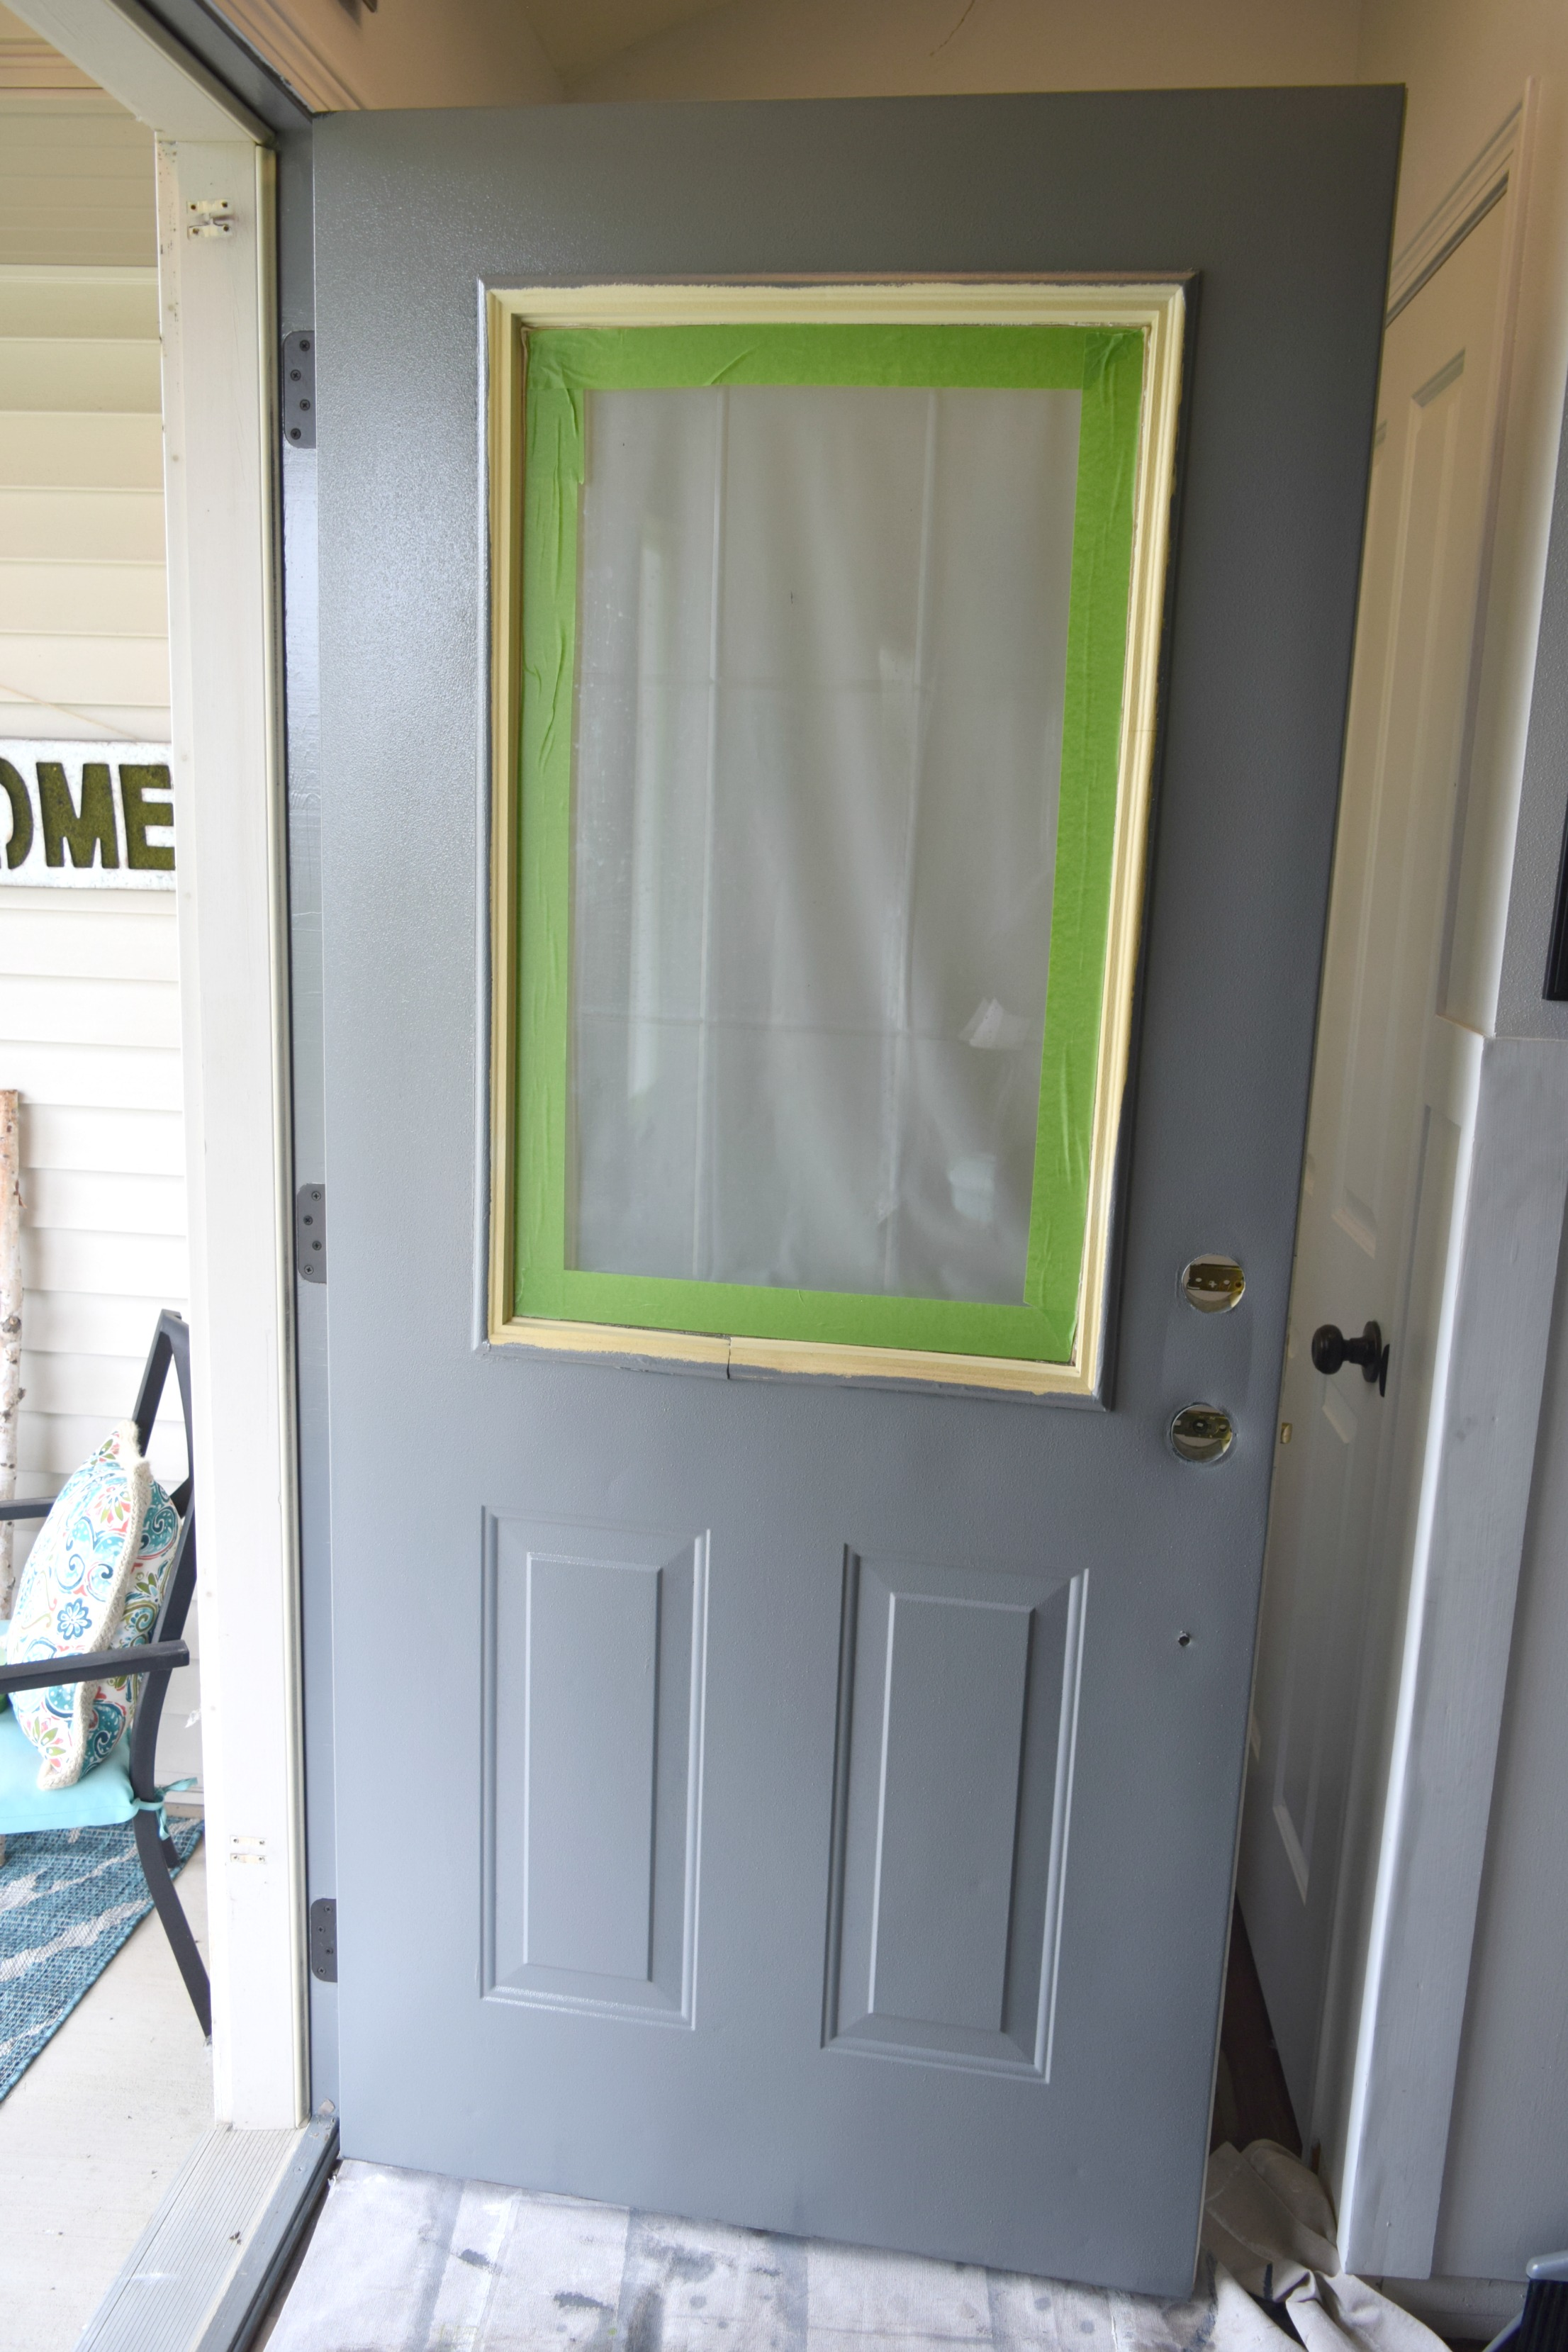 adding curb appeal how to paint shutters and front door. Black Bedroom Furniture Sets. Home Design Ideas